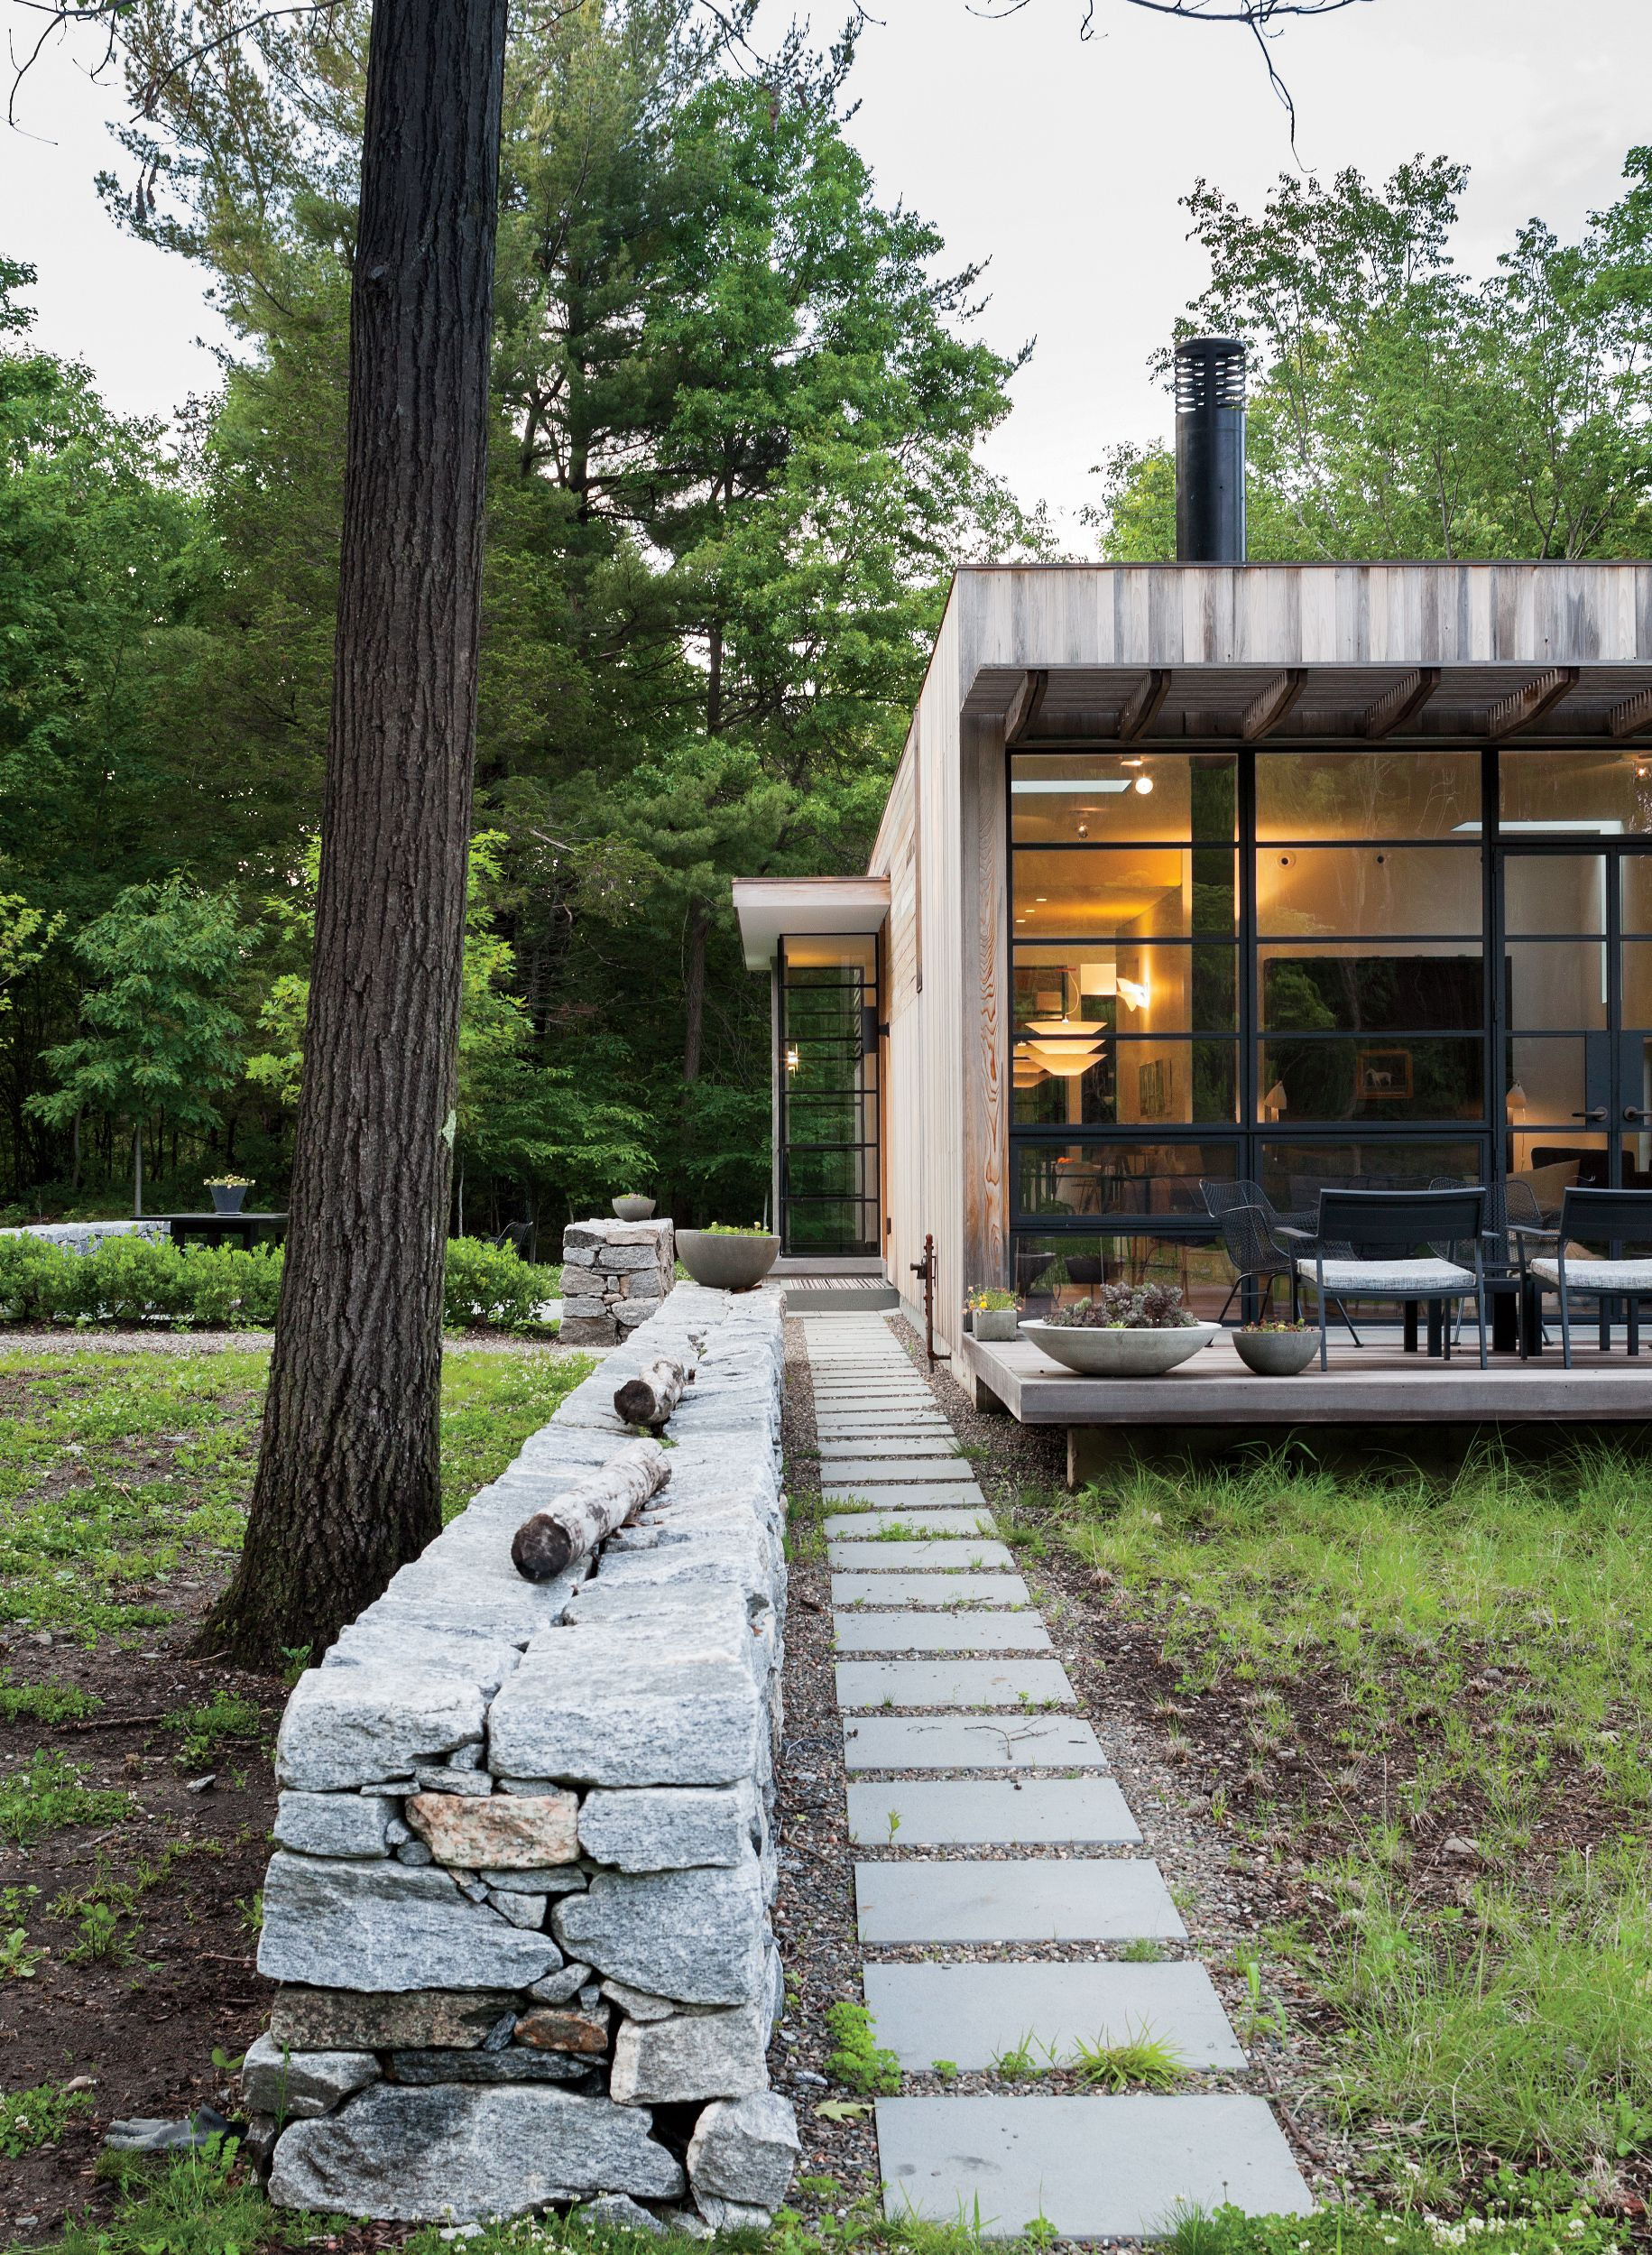 Upstate new york small sustainable retreat for chilewich and sultan outdoor stone wall facade